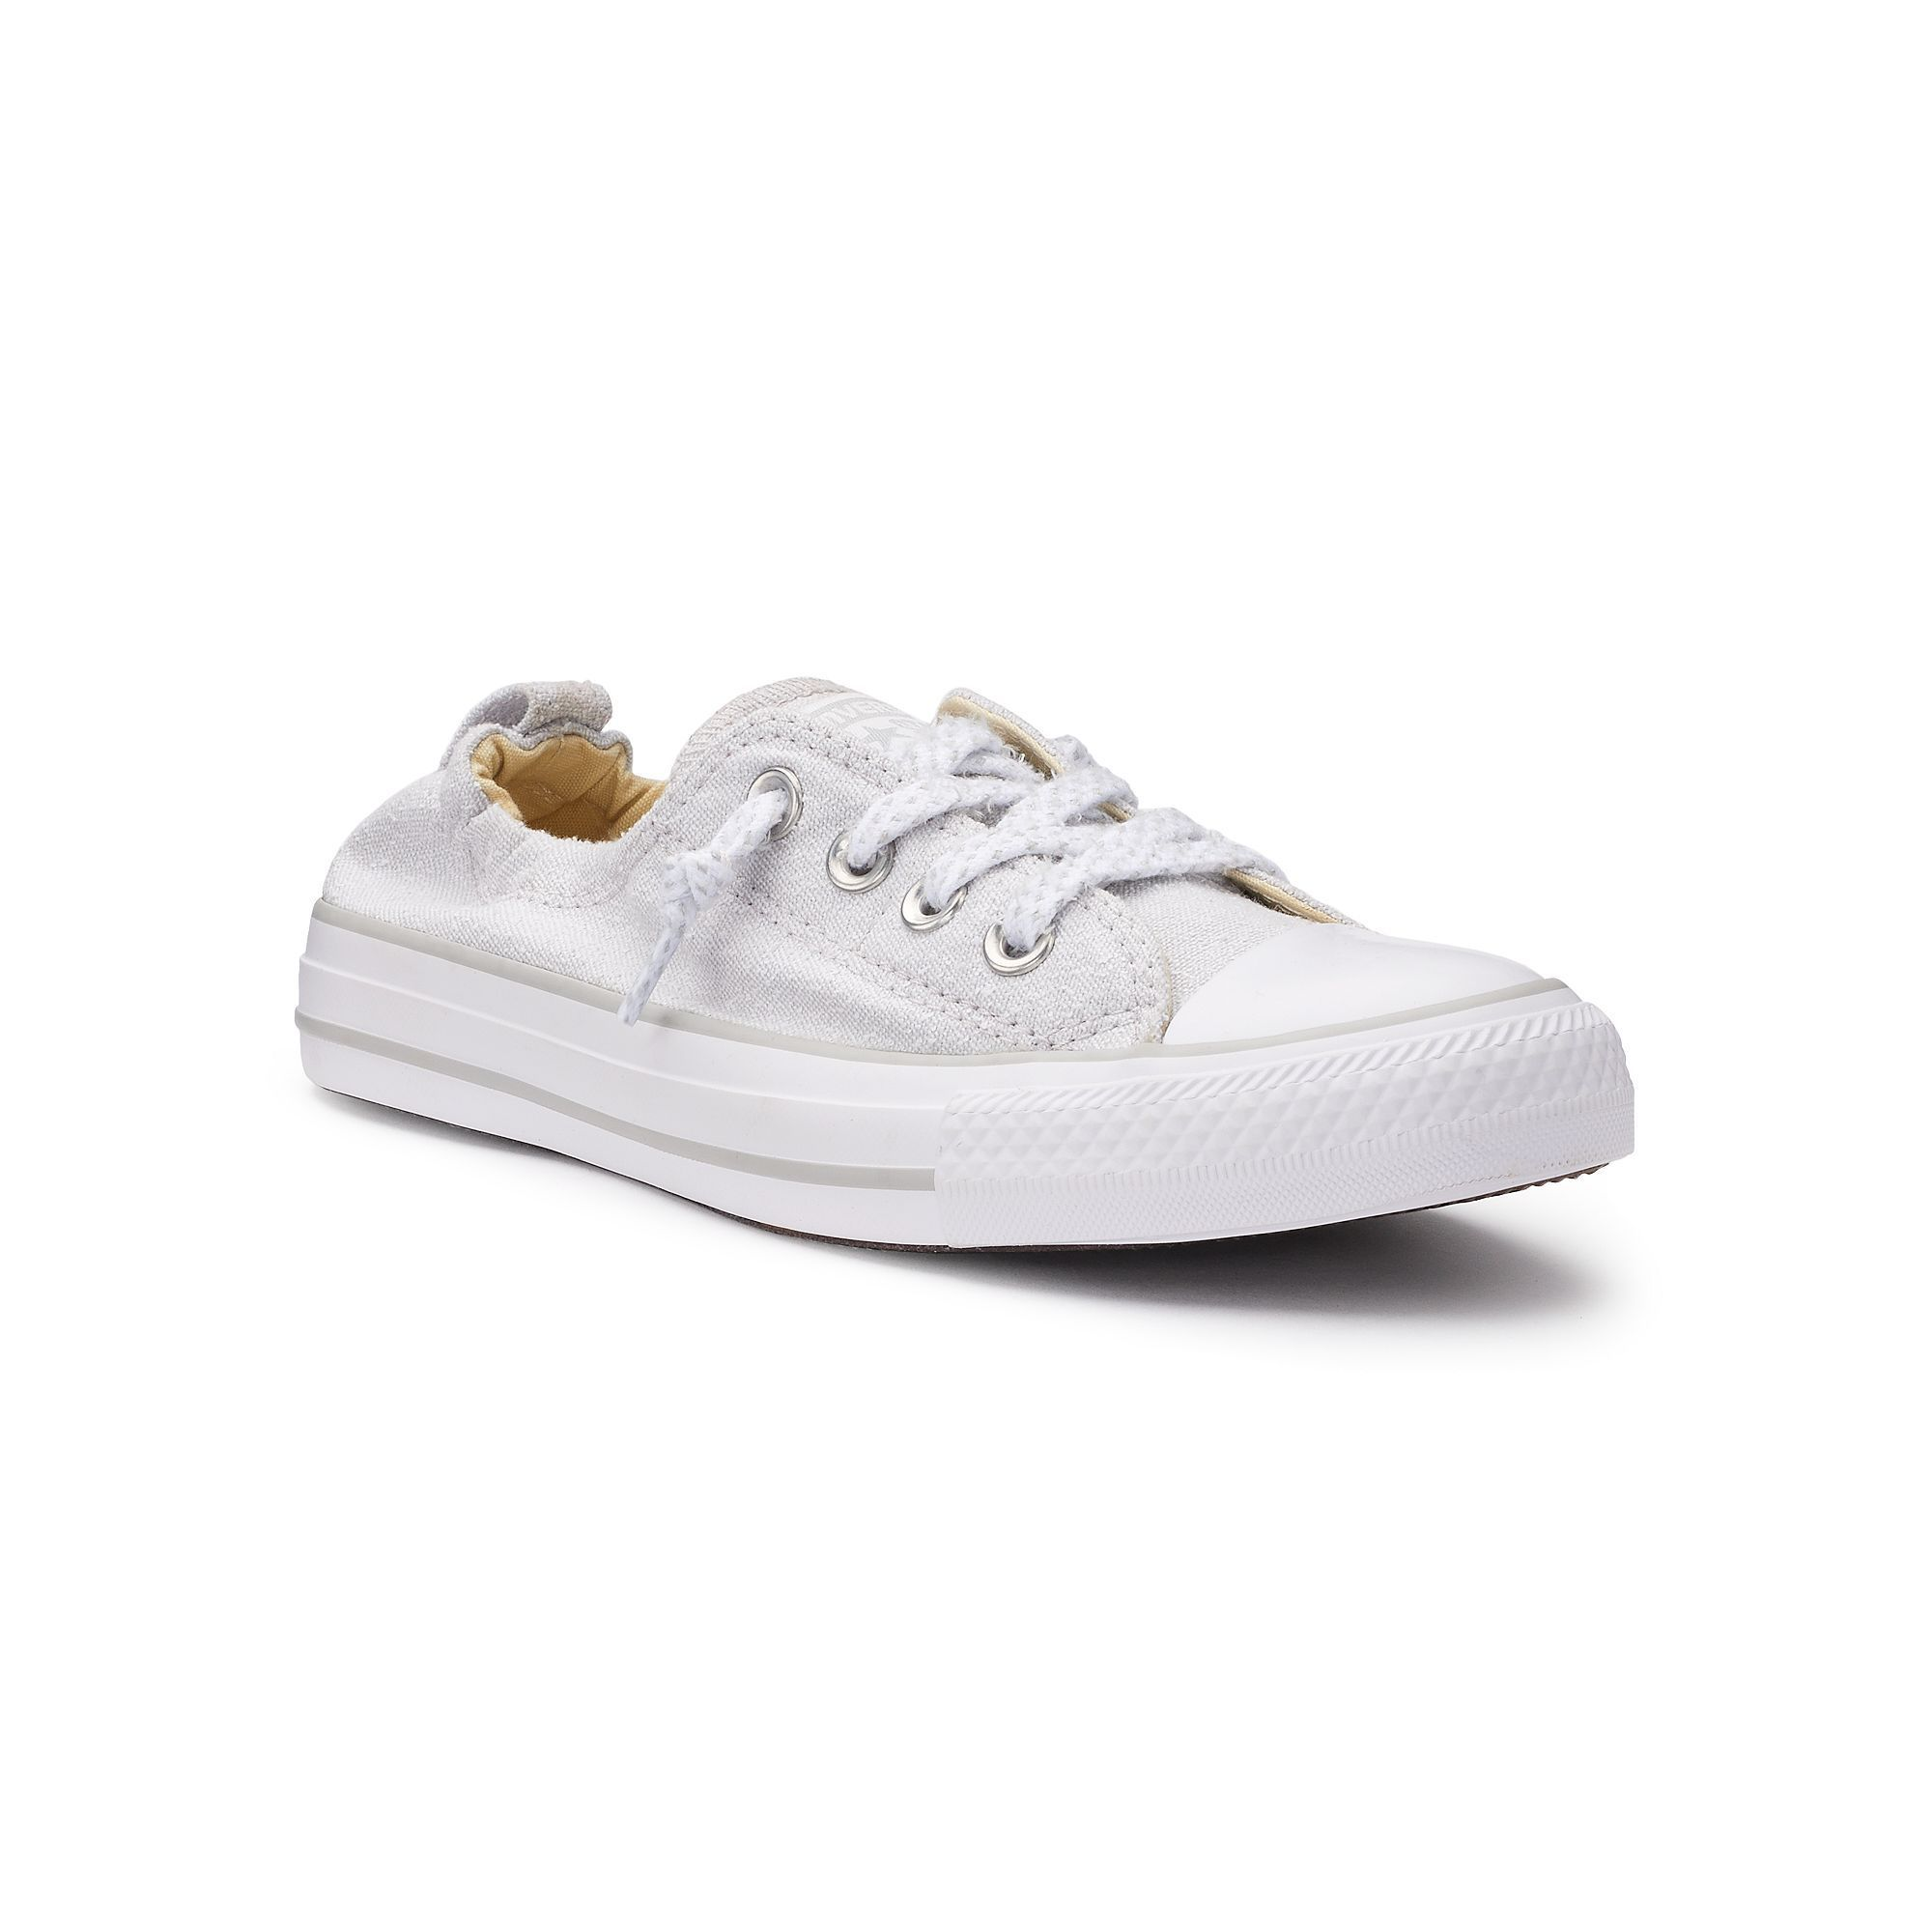 Women Durable Converse Chuck Taylor All Star Sneakers